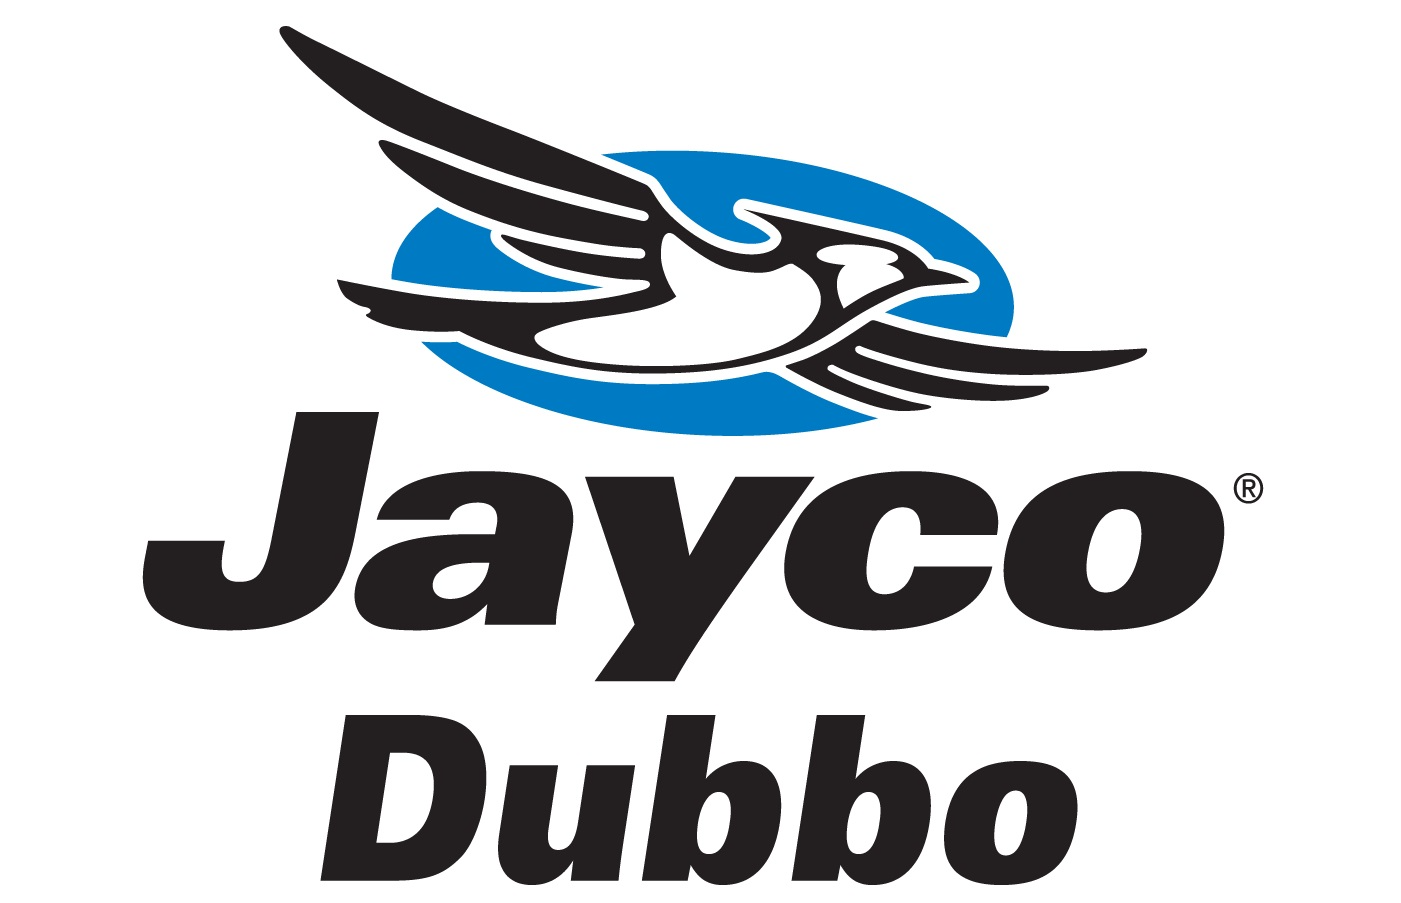 Authorised Dealer - Jayco Dubbo